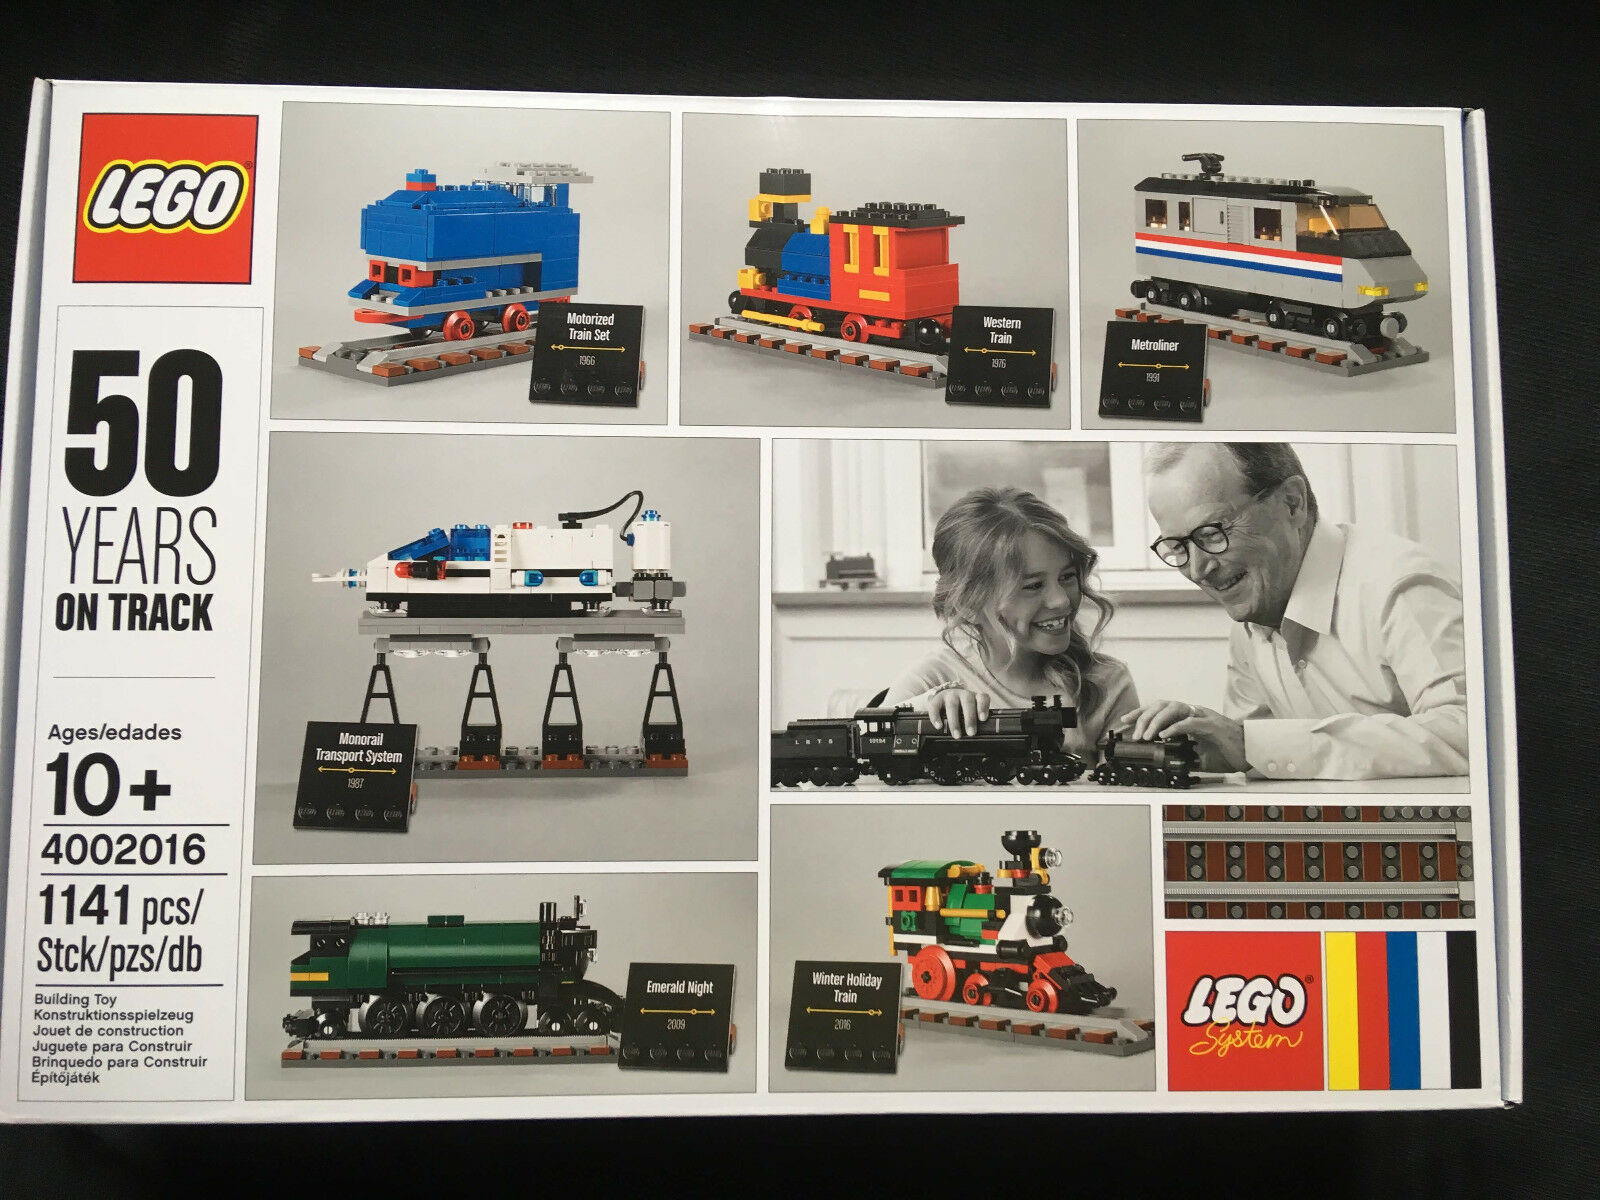 LEGO 4002016 50 Years on track New Collectible